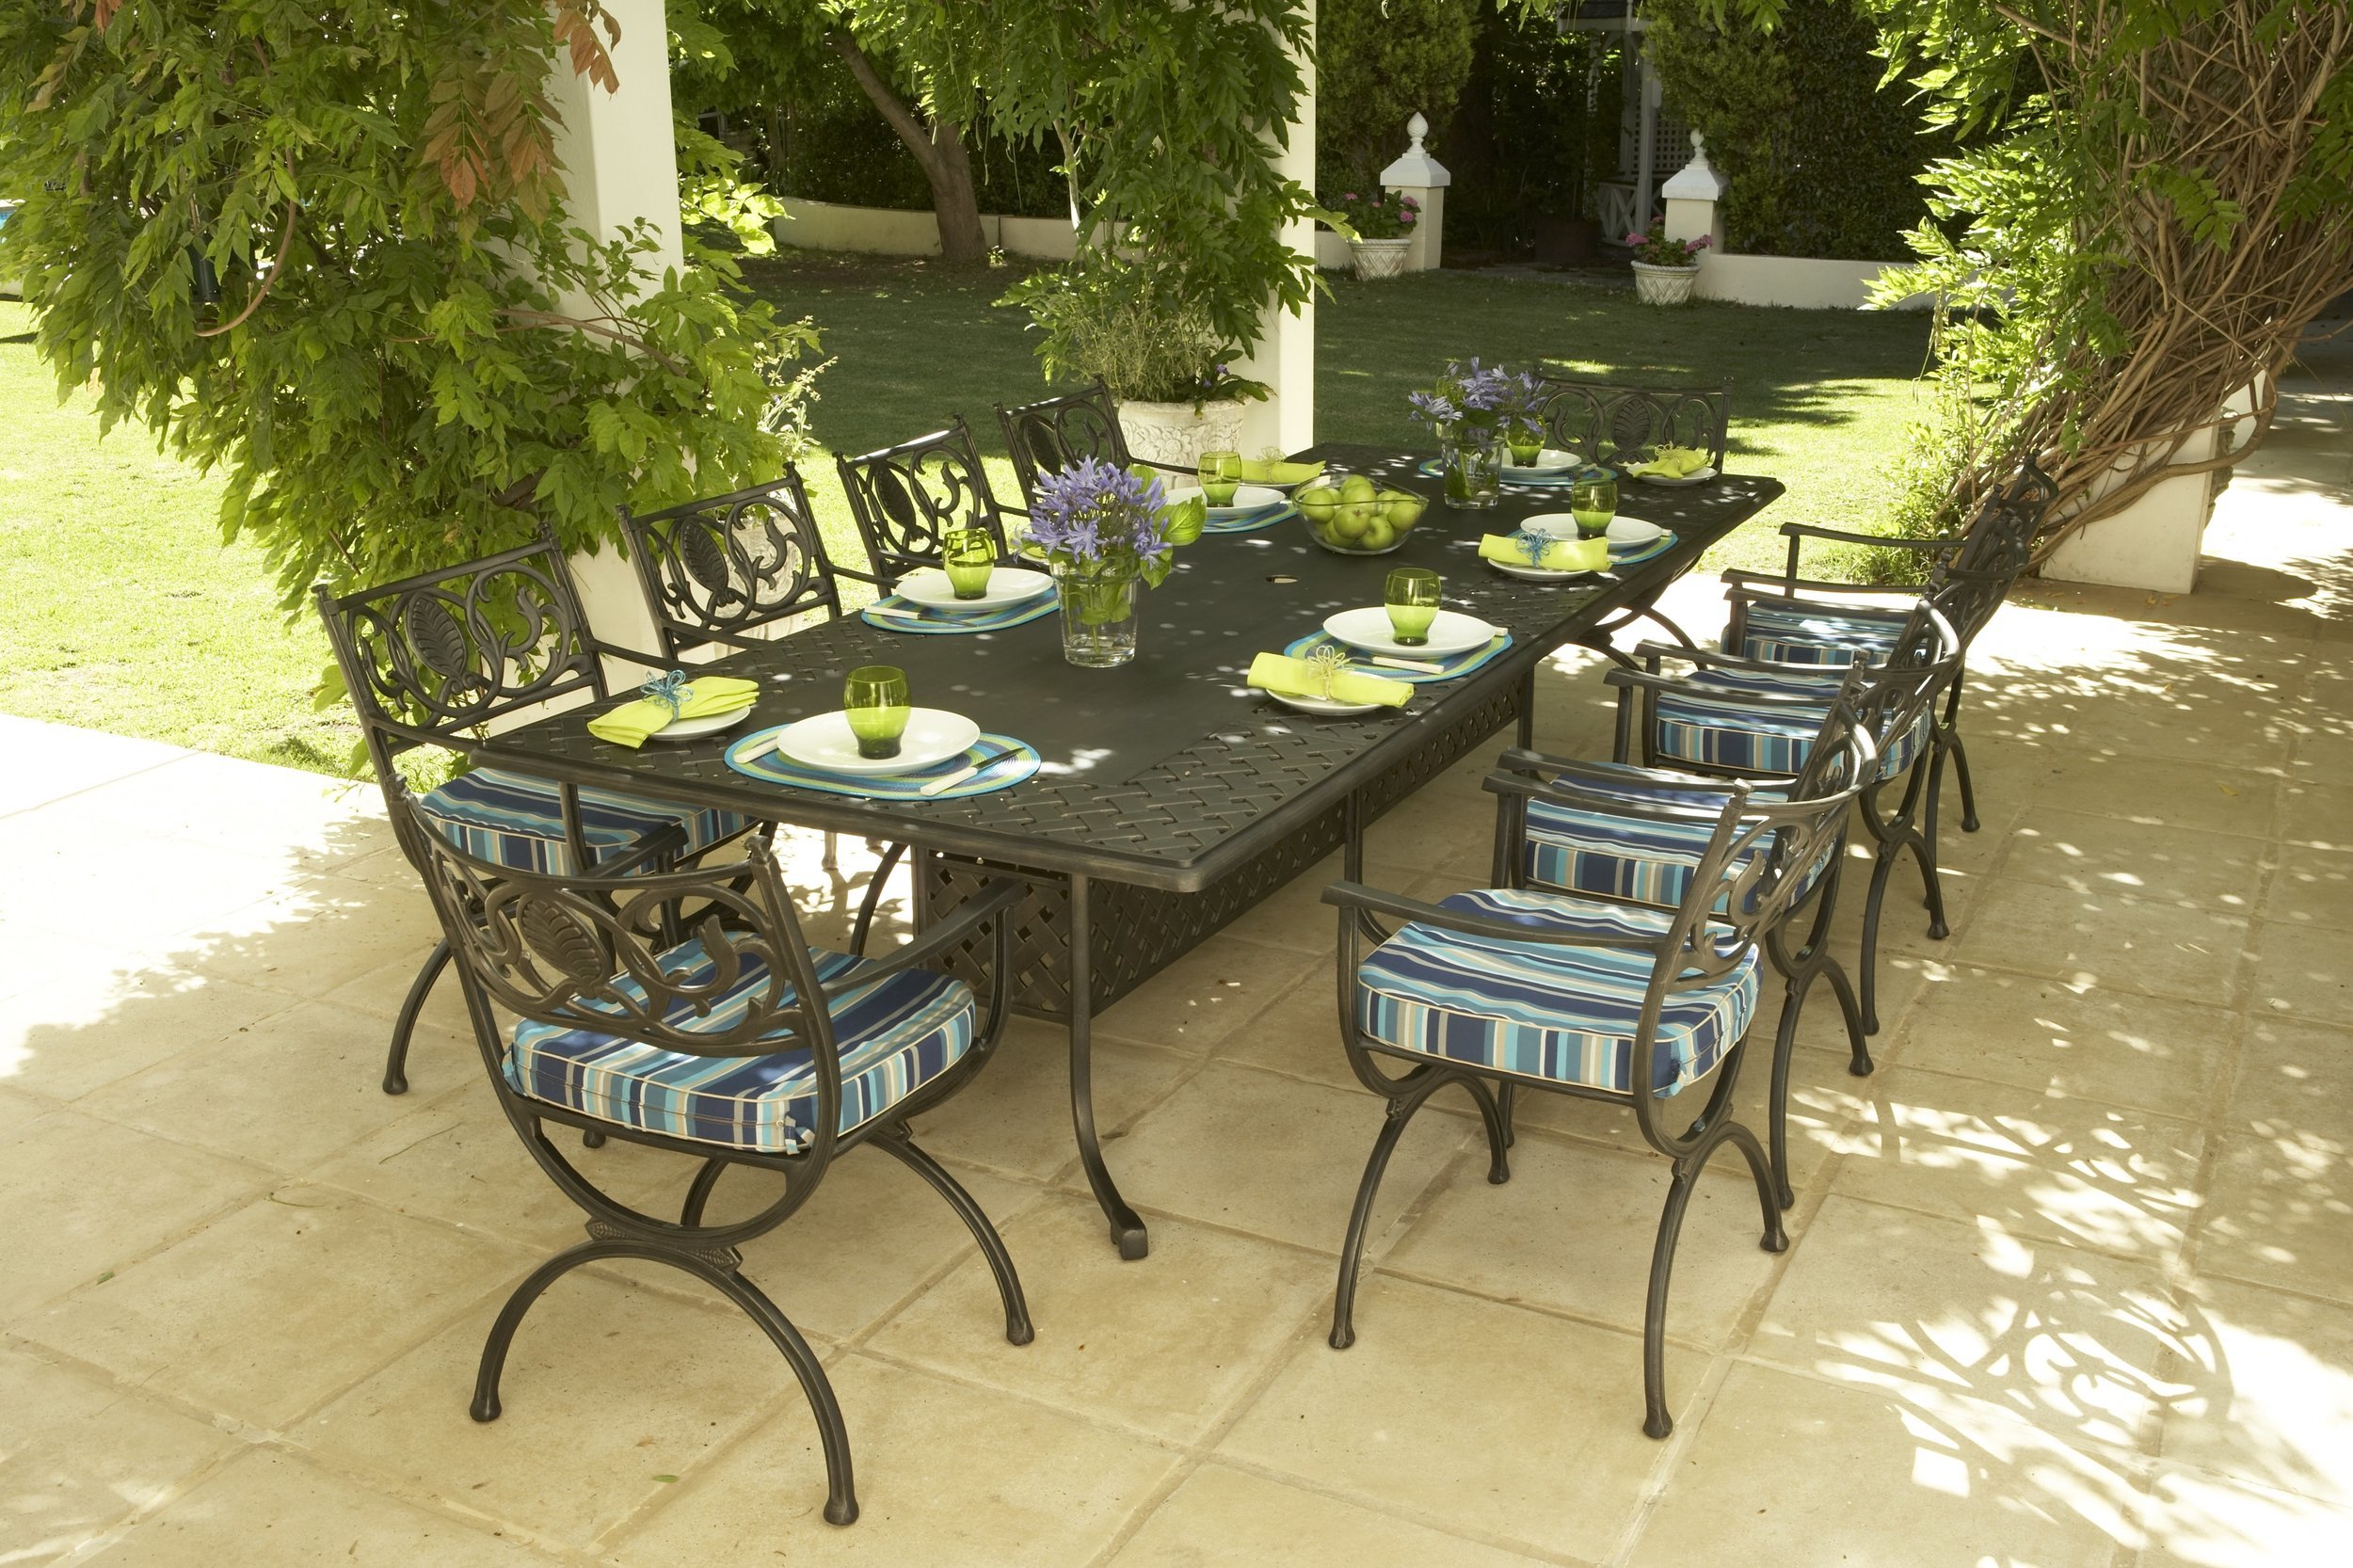 Verona 10 seater table with box base leg design and Vienne carvers